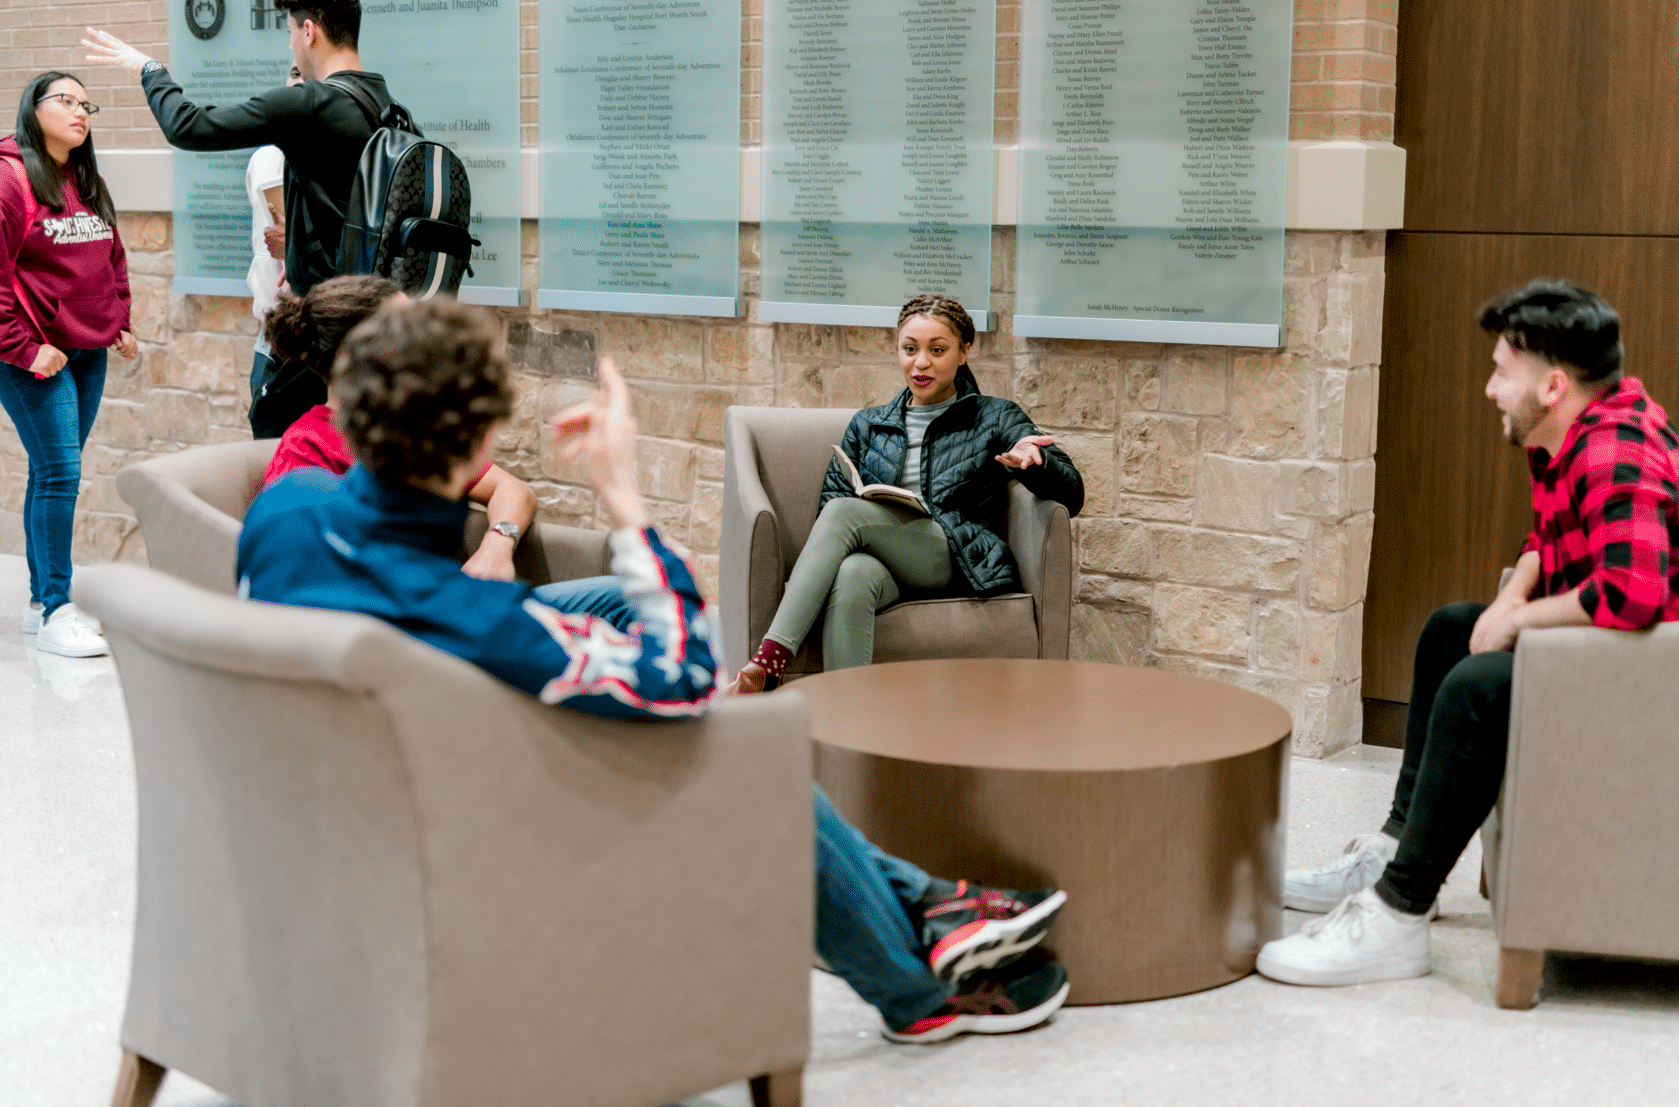 Four students sit in singular chairs and talk to each other across a brown coffee table.